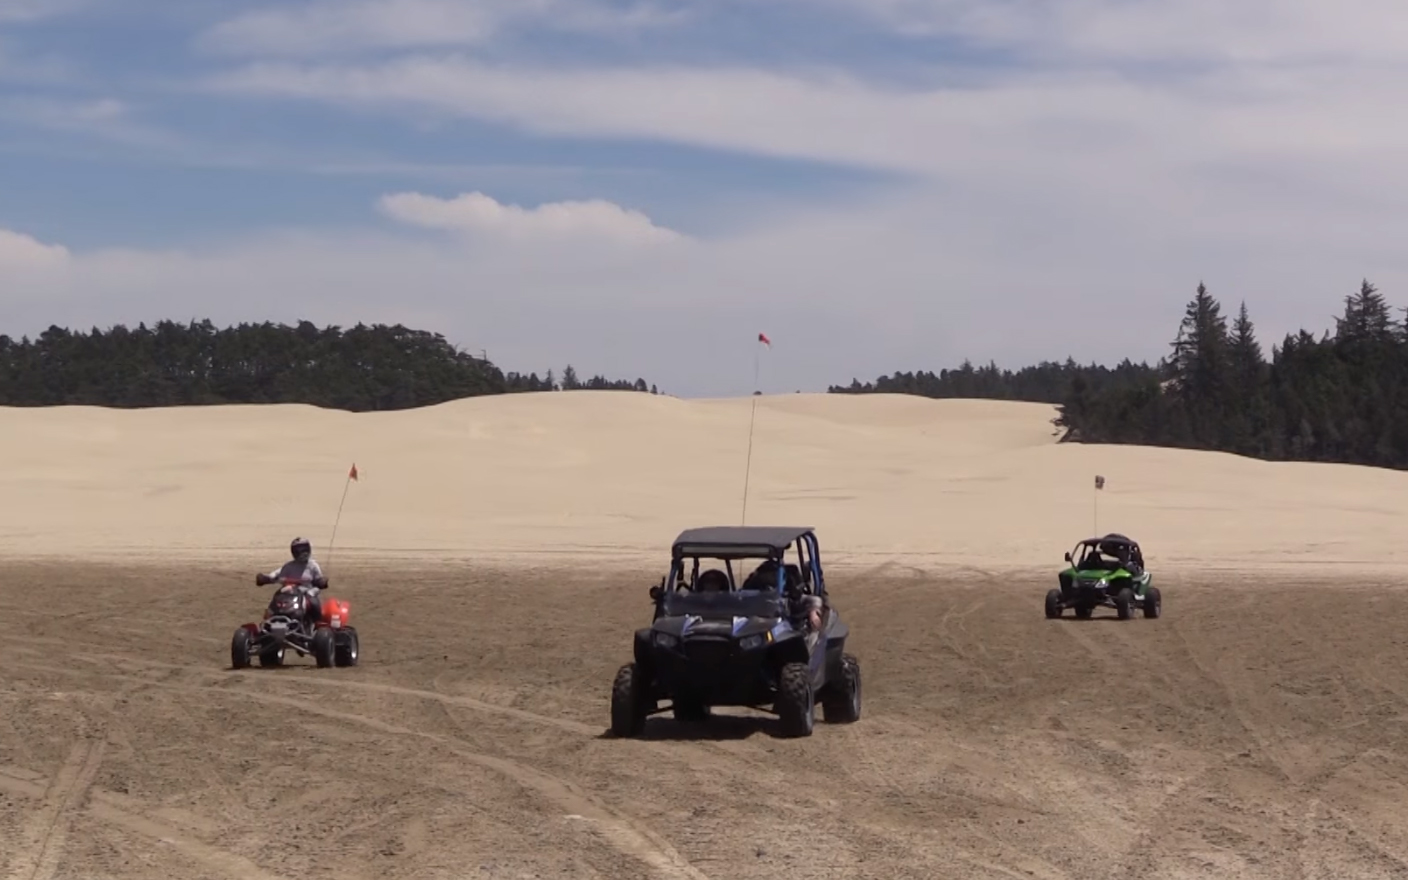 Three Off Road Vehicles on the Sand